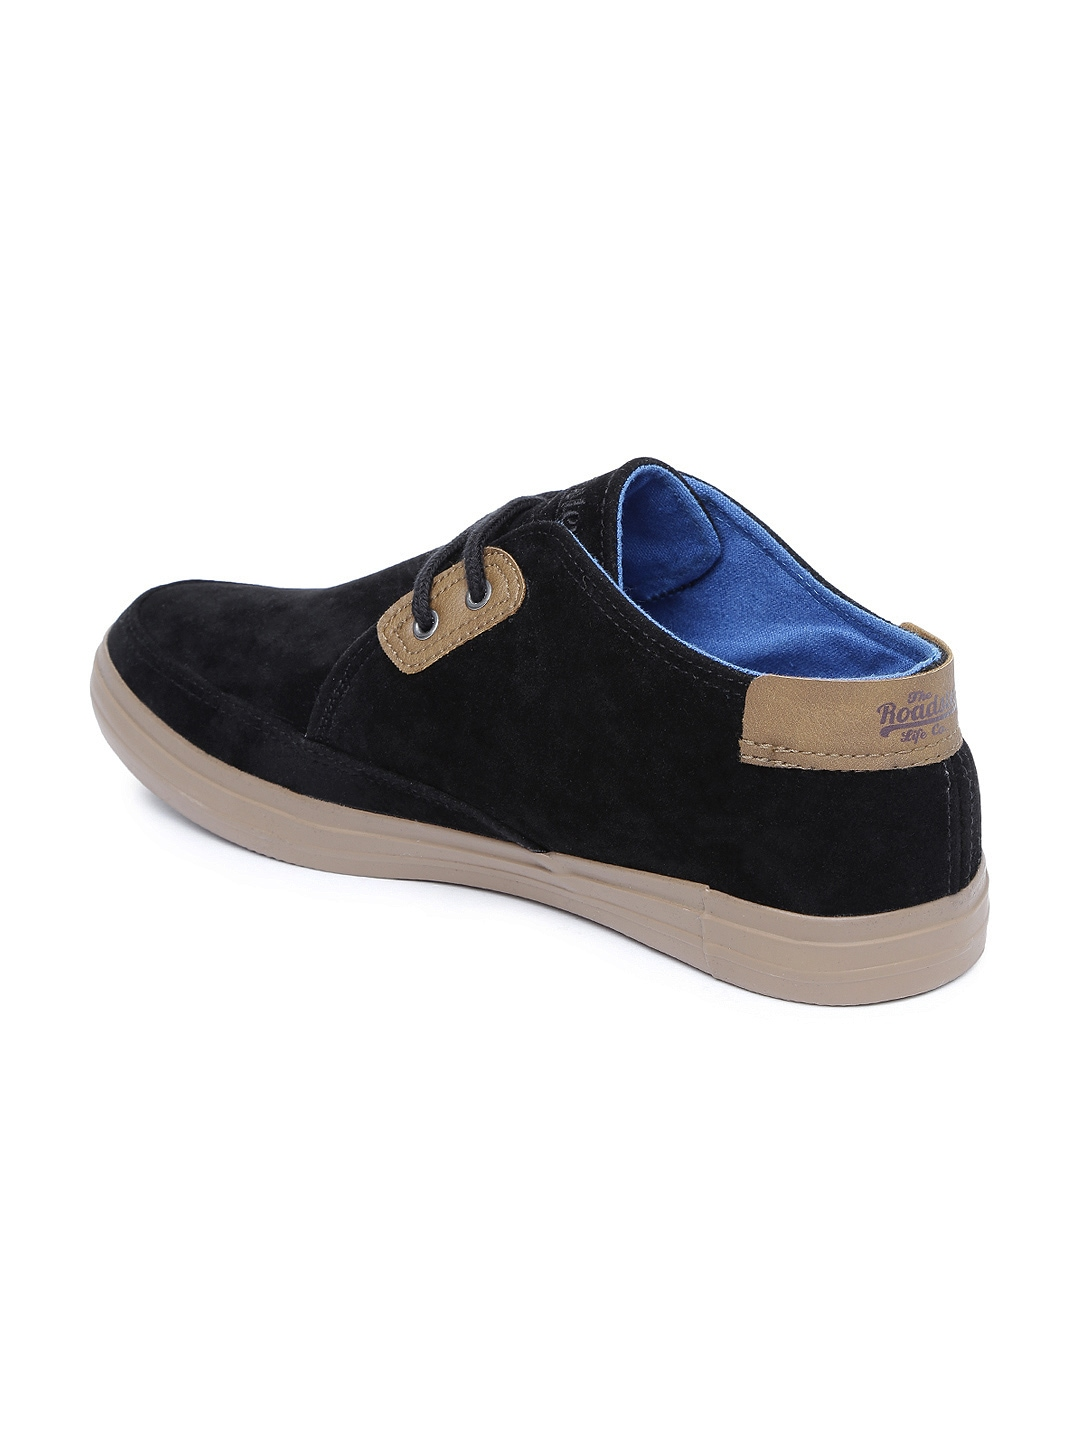 myntra roadster black casual shoes 743495 buy myntra